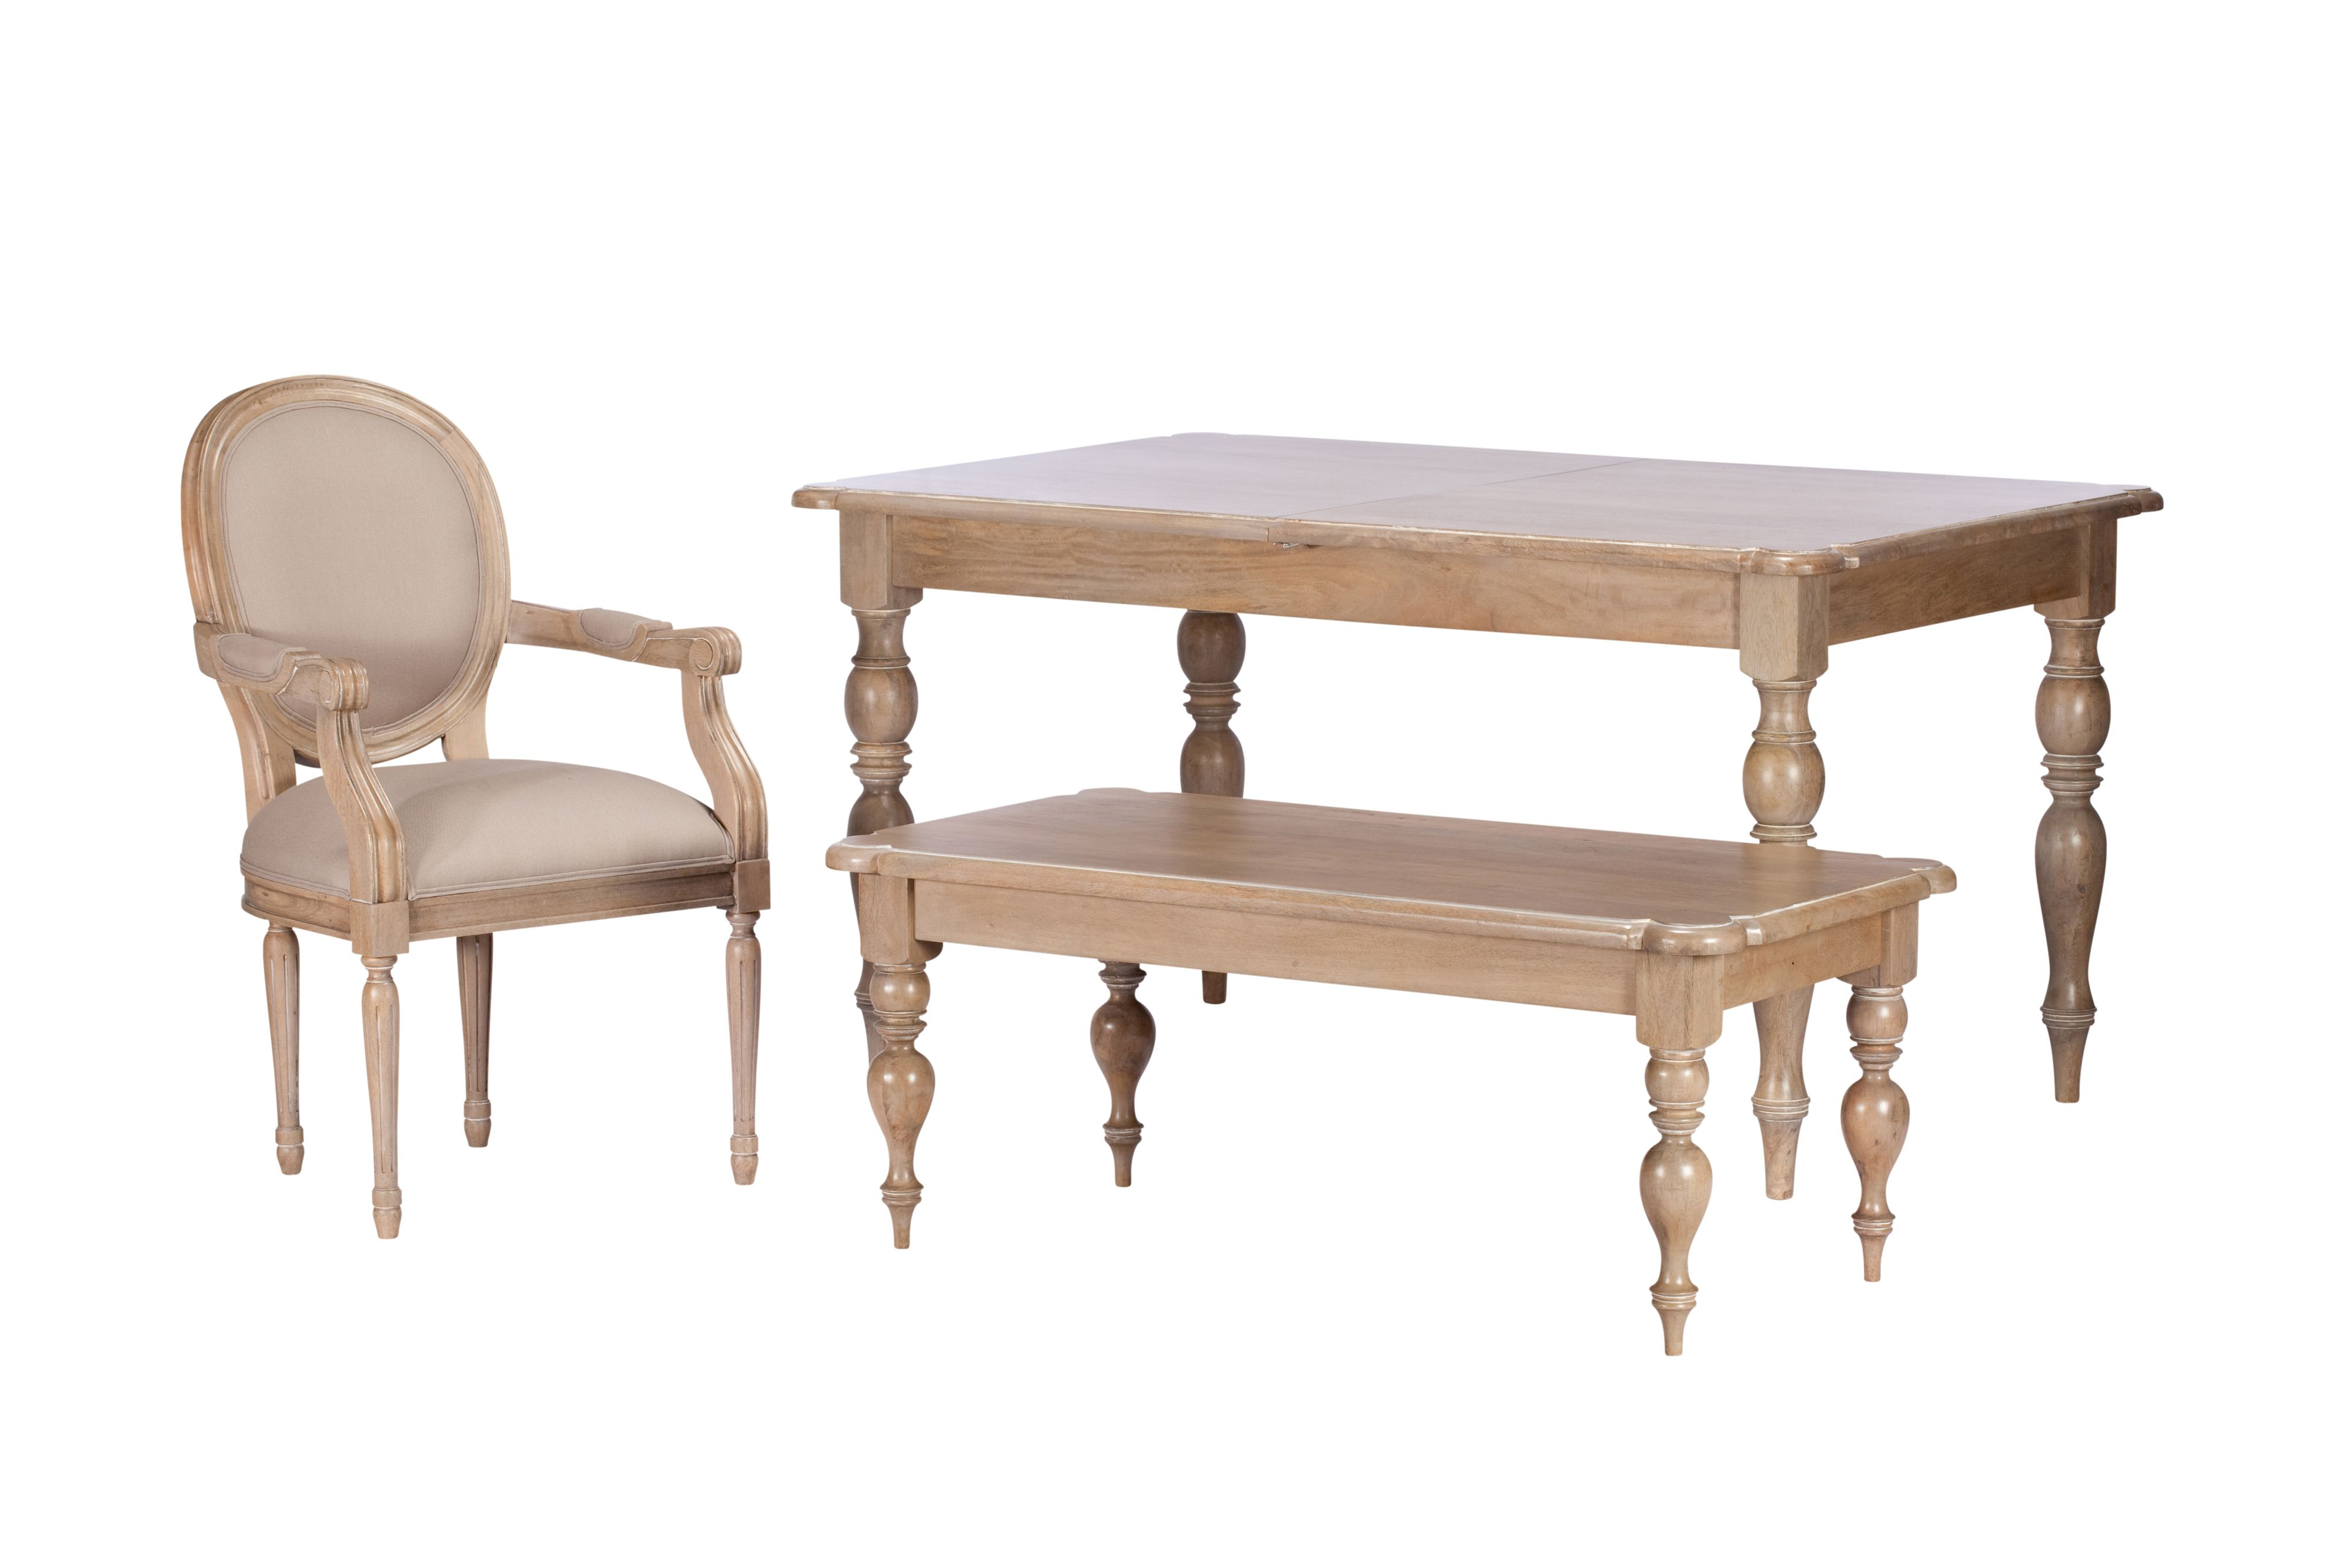 Florence dining furniture range